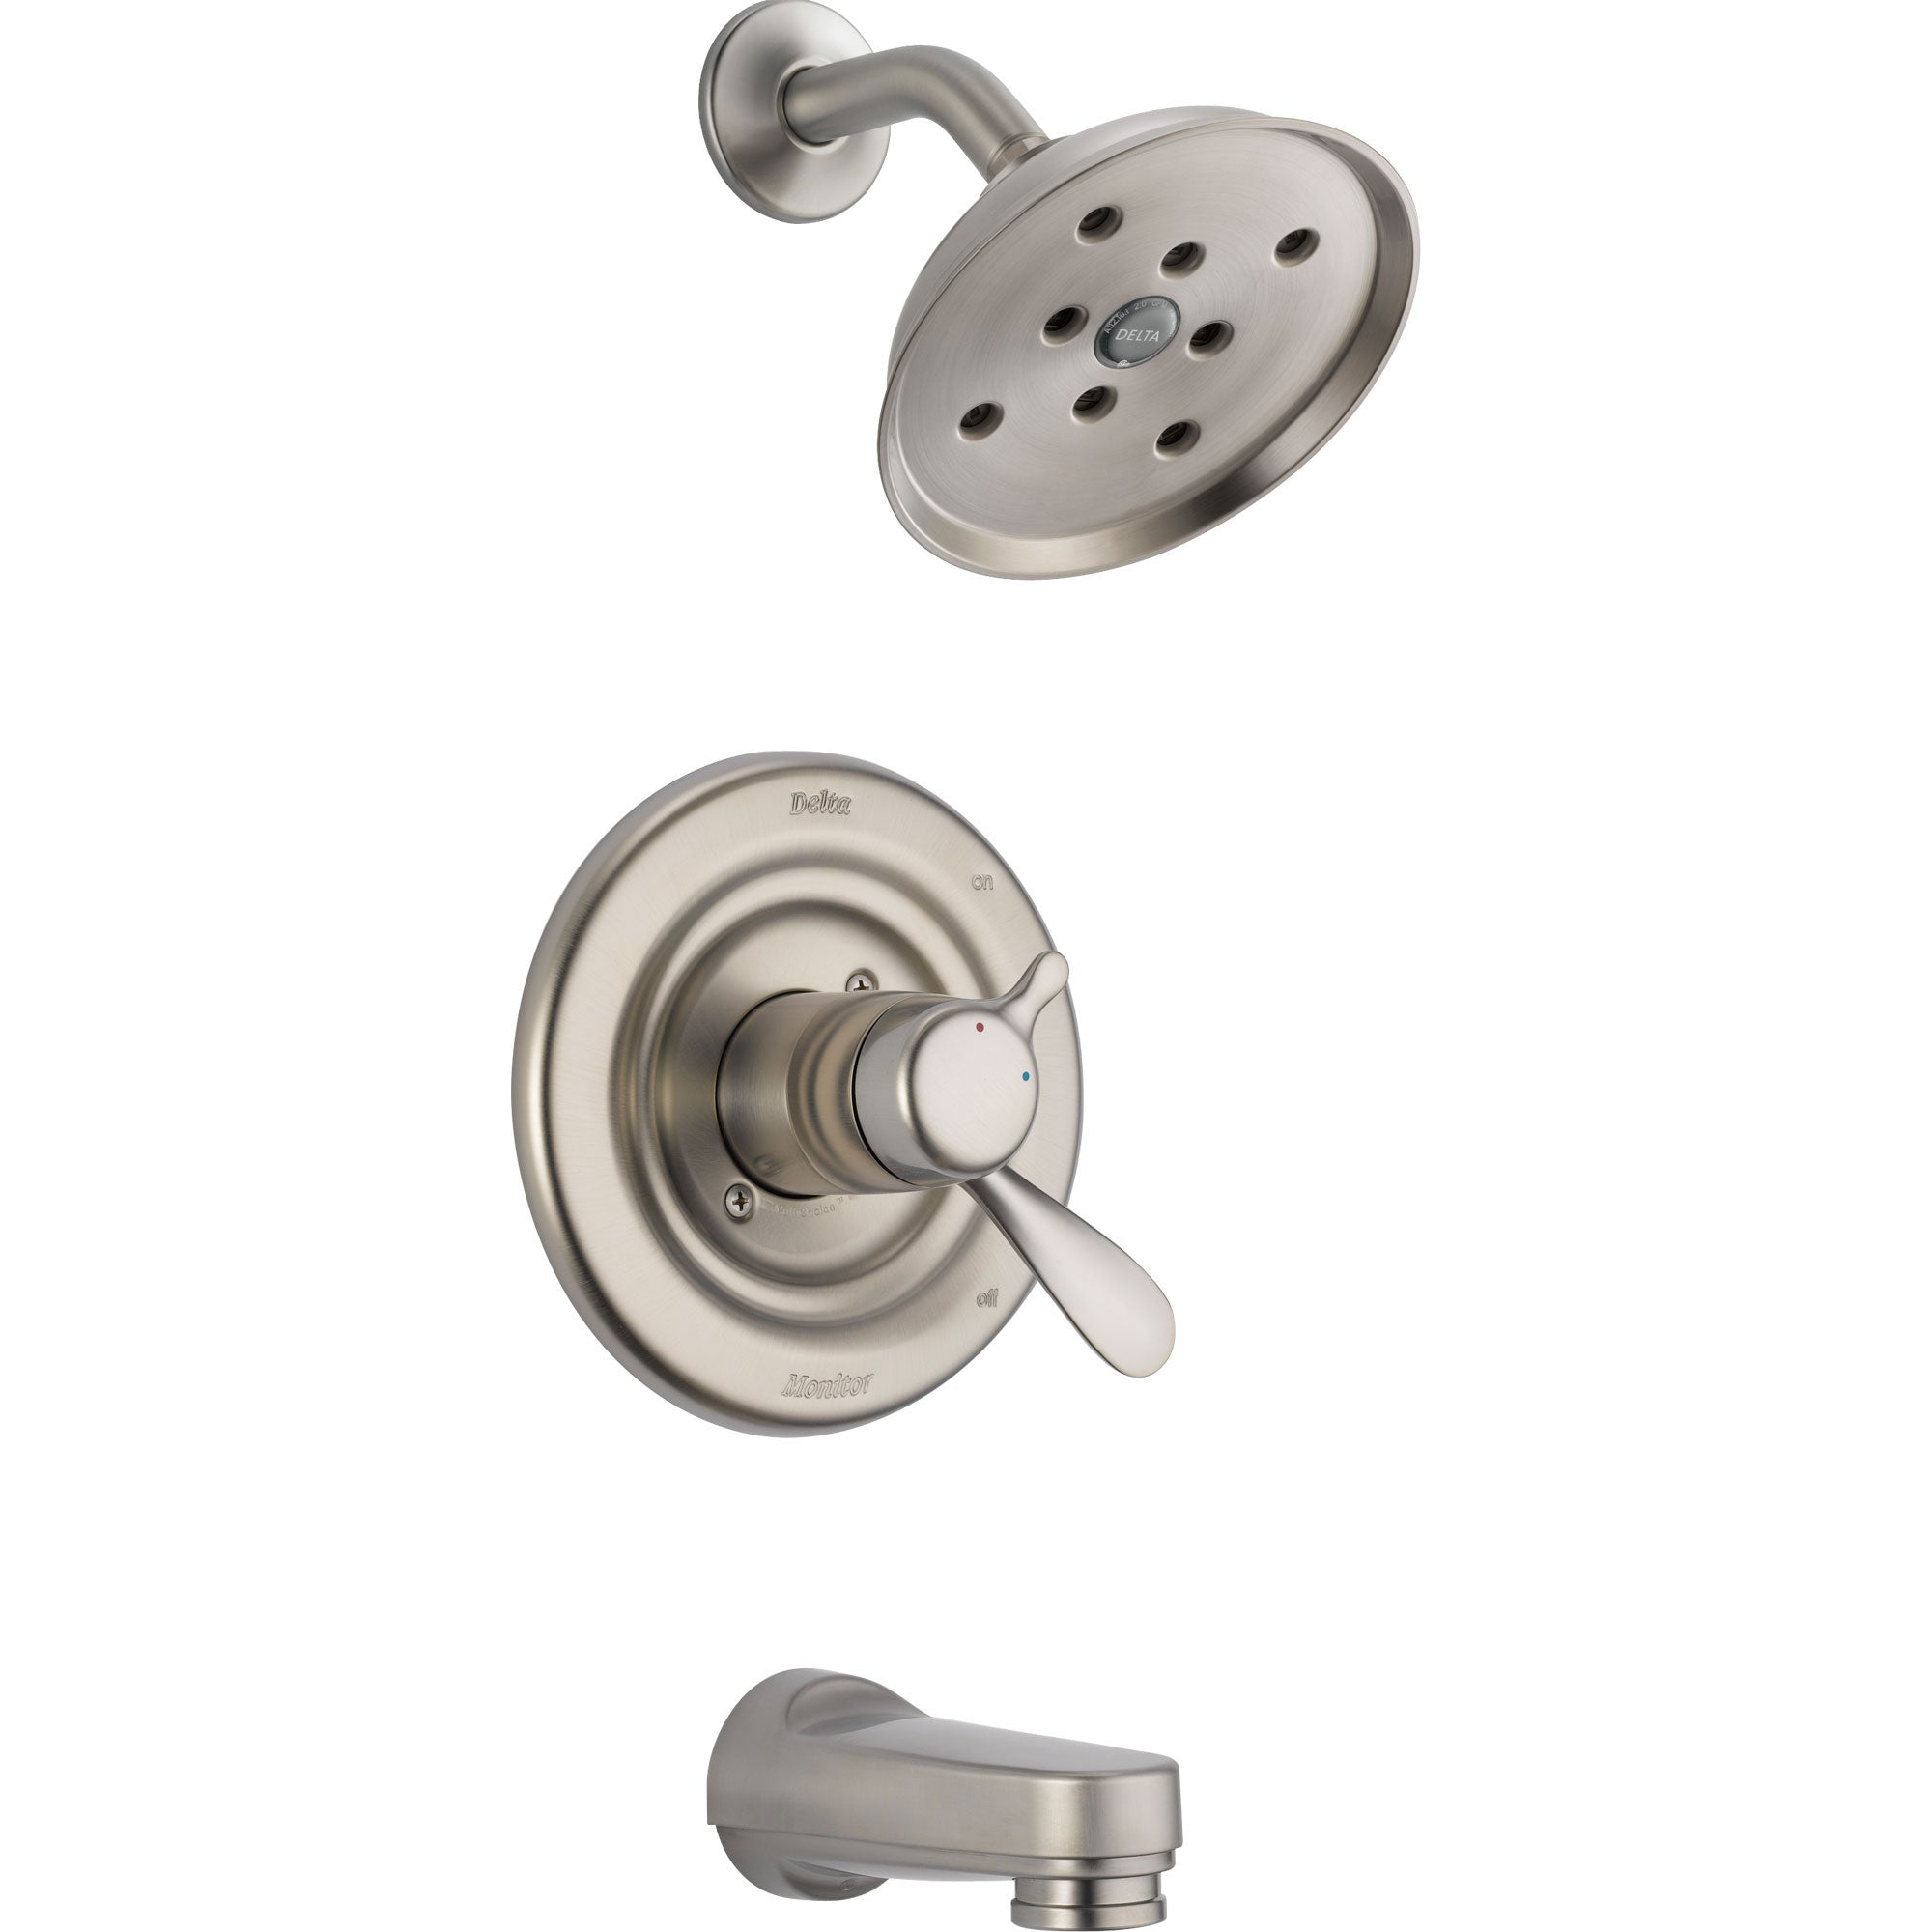 Delta Dual Control Temp/Volume Tub & Shower with Valve in Stainless Steel D430V